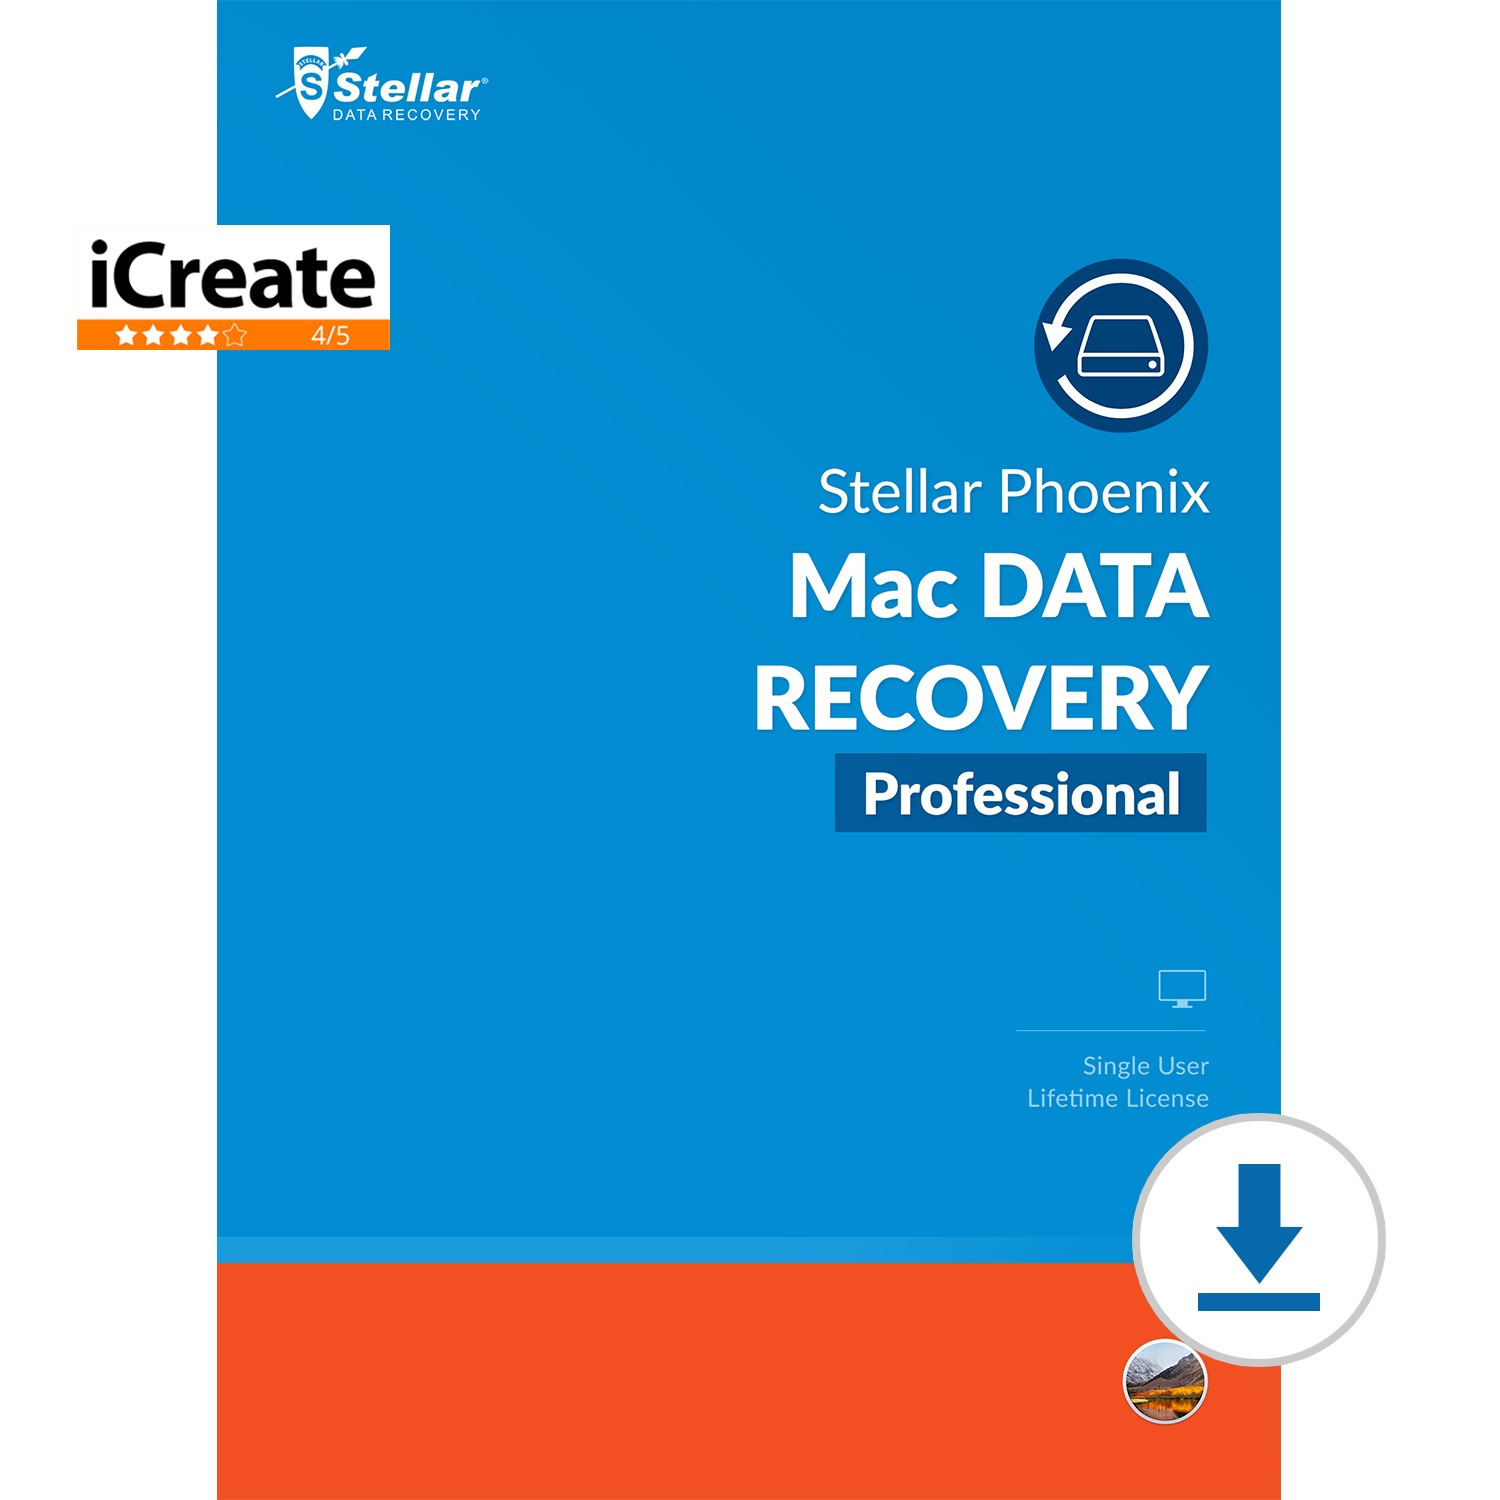 Stellar Data Recovery Software |...